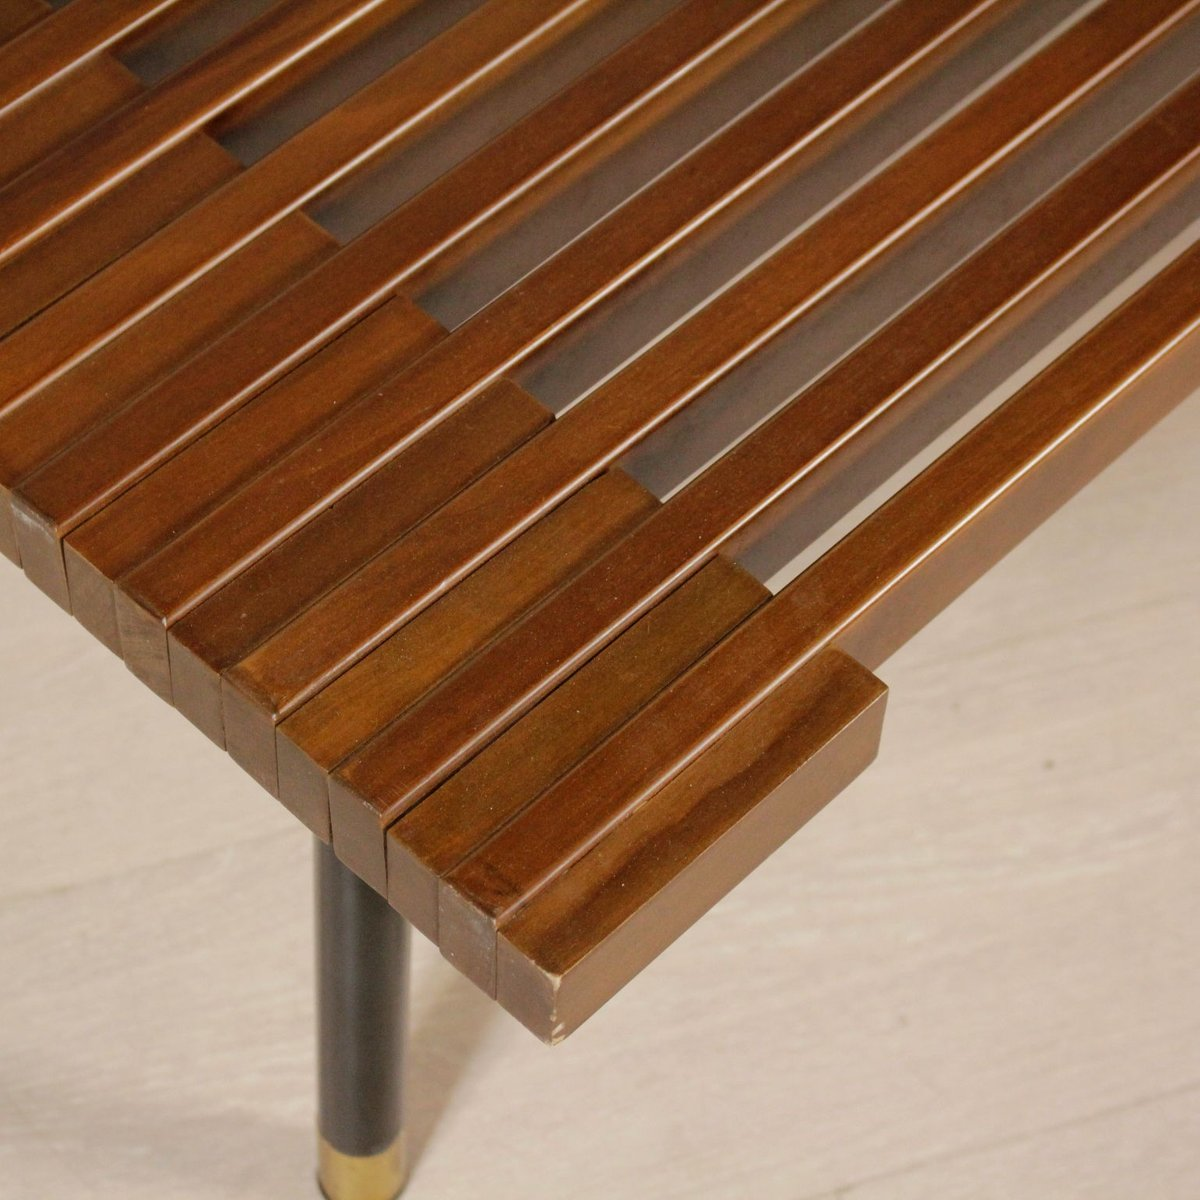 Vintage Italian Stained Beech Coffee Table With Metal Legs